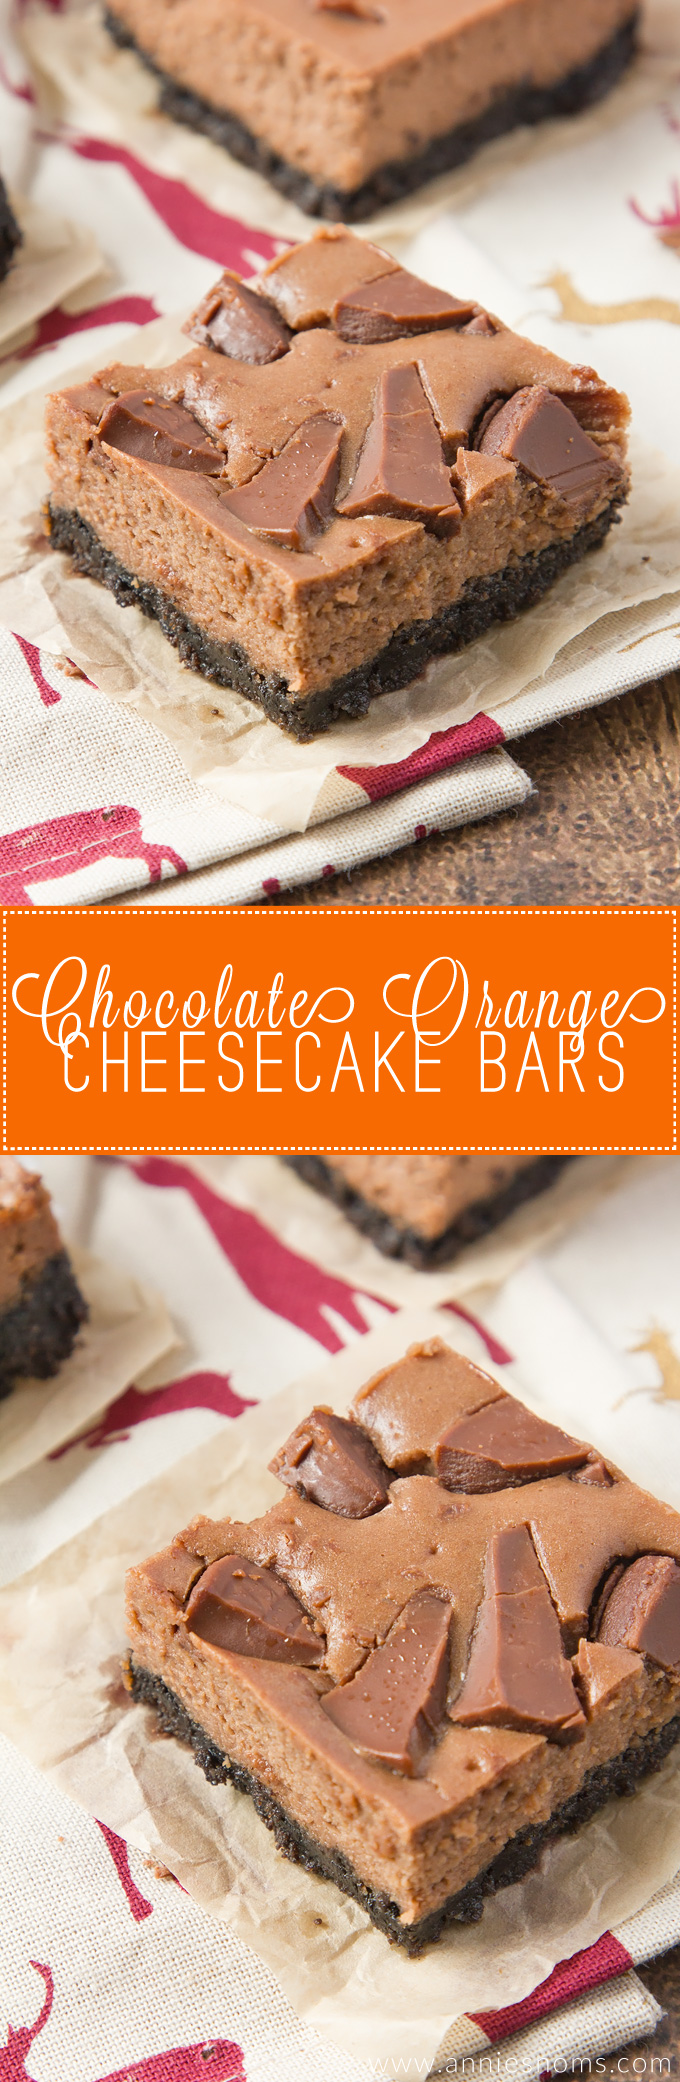 Lusciously smooth chocolate orange cheesecake, with a crunchy Oreo biscuit base. A deliciously simple Christmas bake everyone will love!